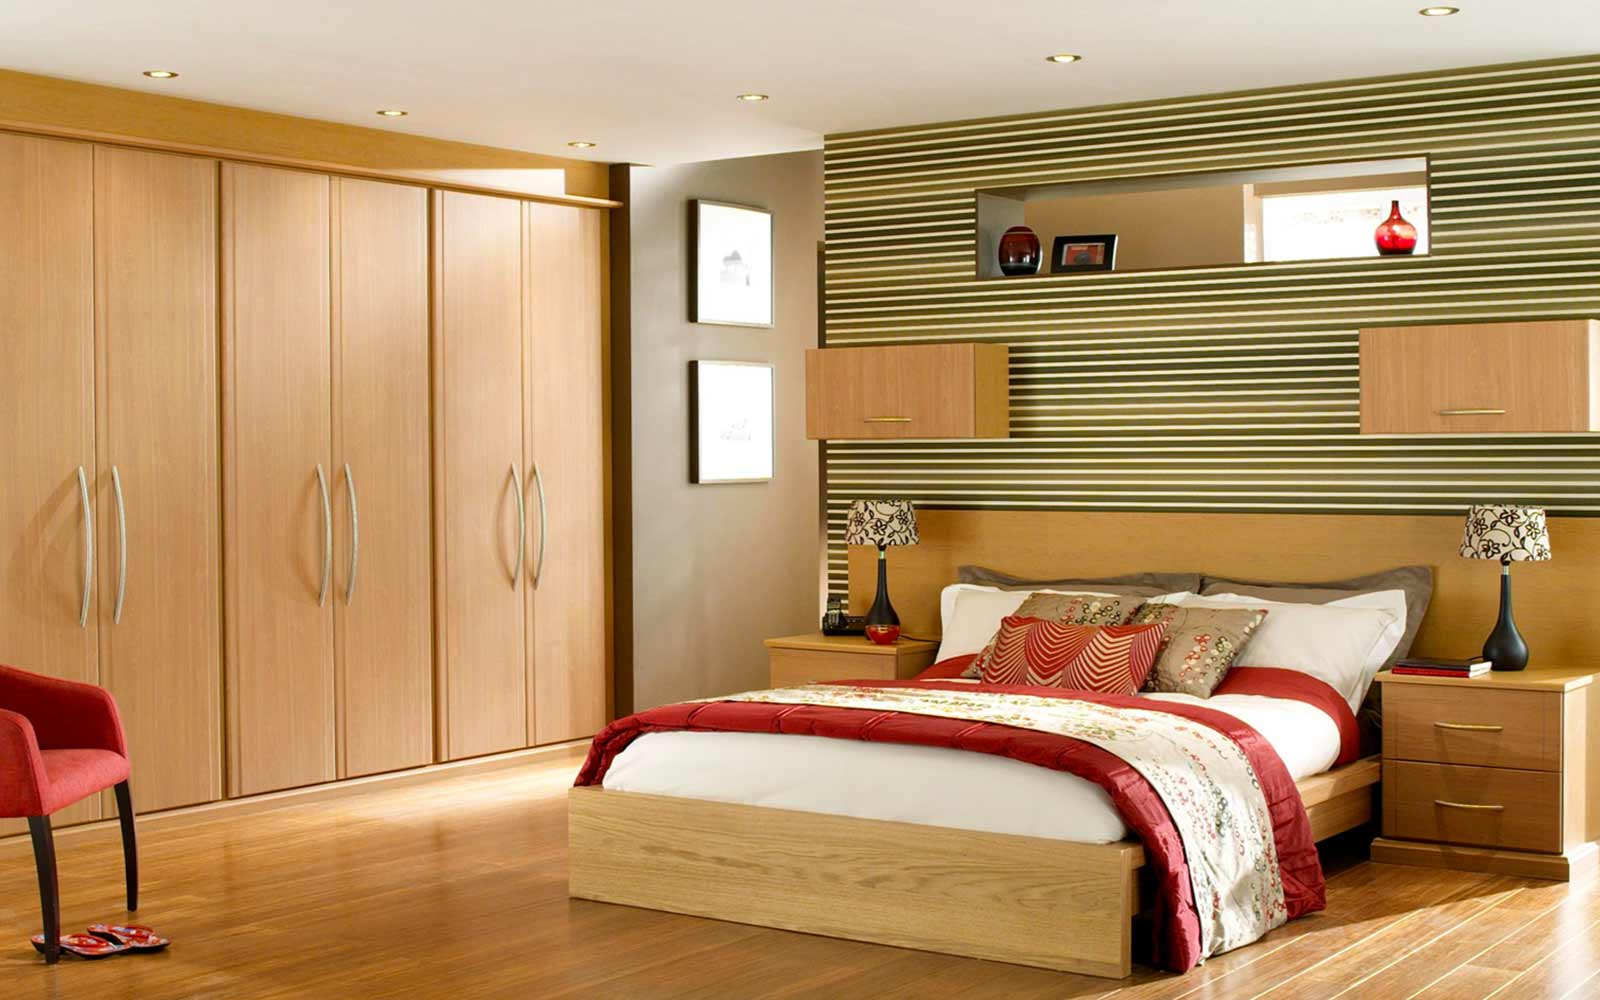 Indian bedroom furniture designs - The Wardrobes At The Side And Dusky Sand Colored Furniture Gives A Very Beautiful Look To The Room The Design Of The Wall Behind The Bed